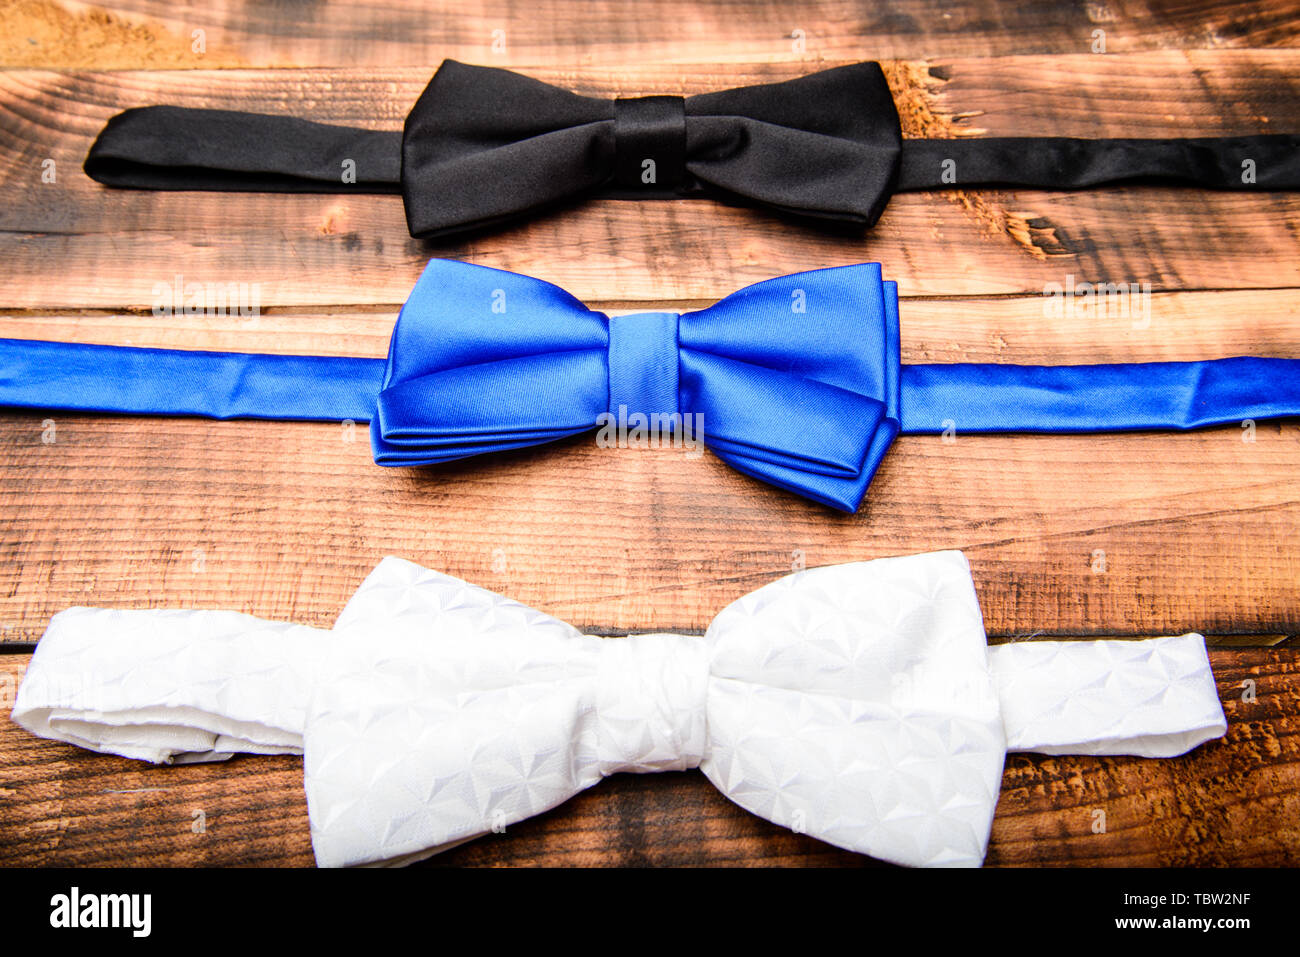 Esthete detail. Fix bow tie. Groom wedding. Textile fabric bow close up. Modern formal style. Menswear clothes. Perfect outfit. Tying bow tie. Wedding accessories. Fashion accessory. - Stock Image